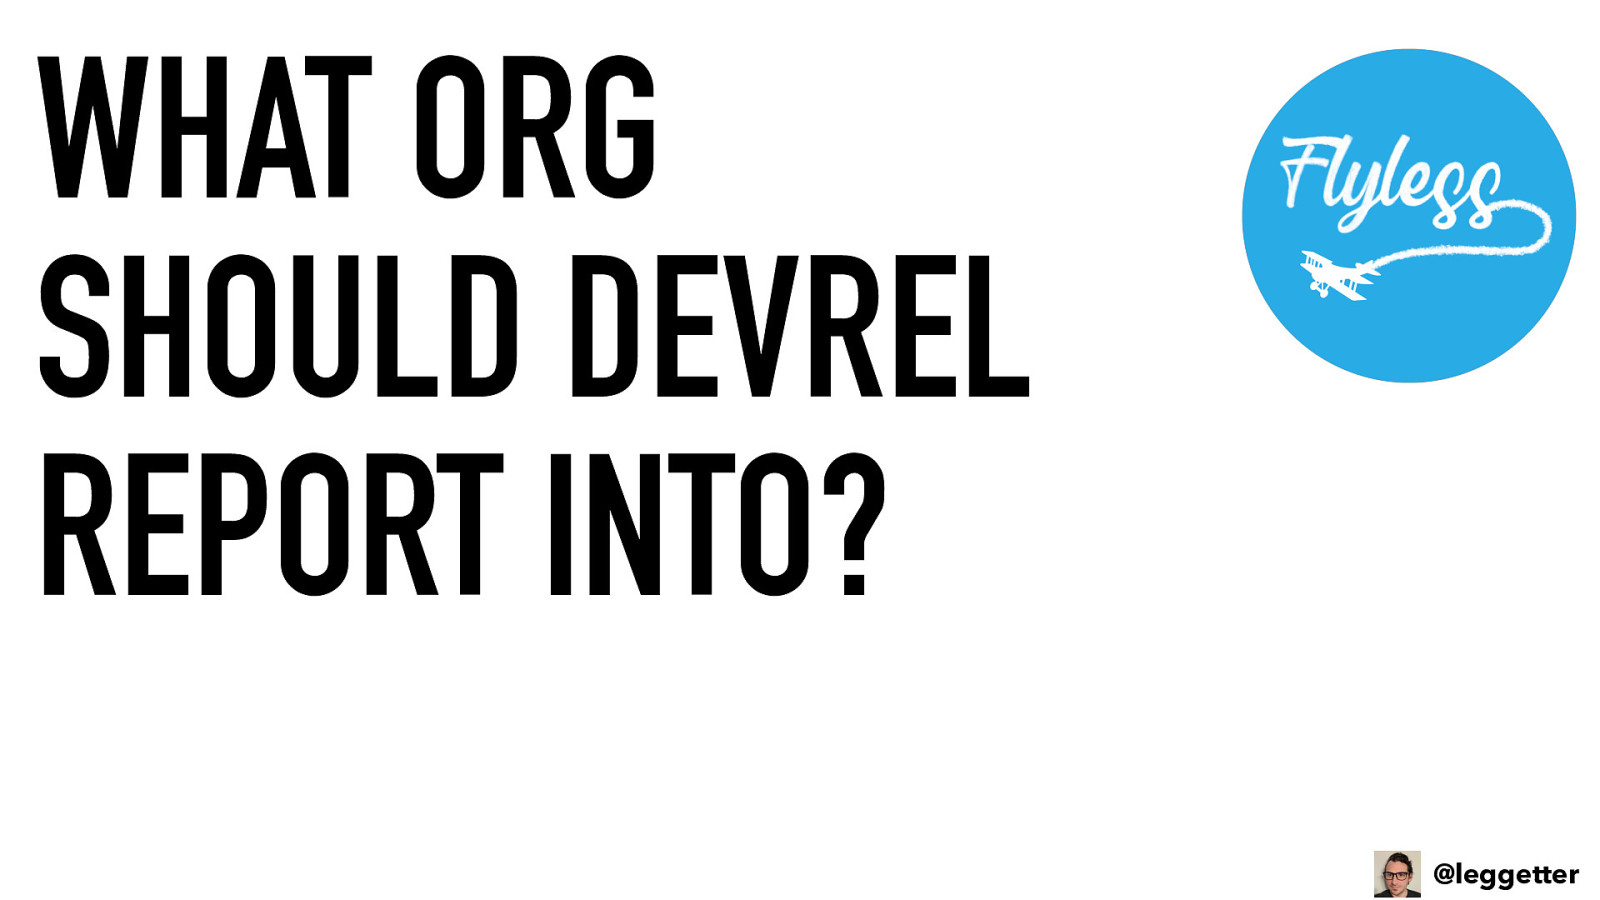 Where does DevRel fit into an org? by Phil Leggetter